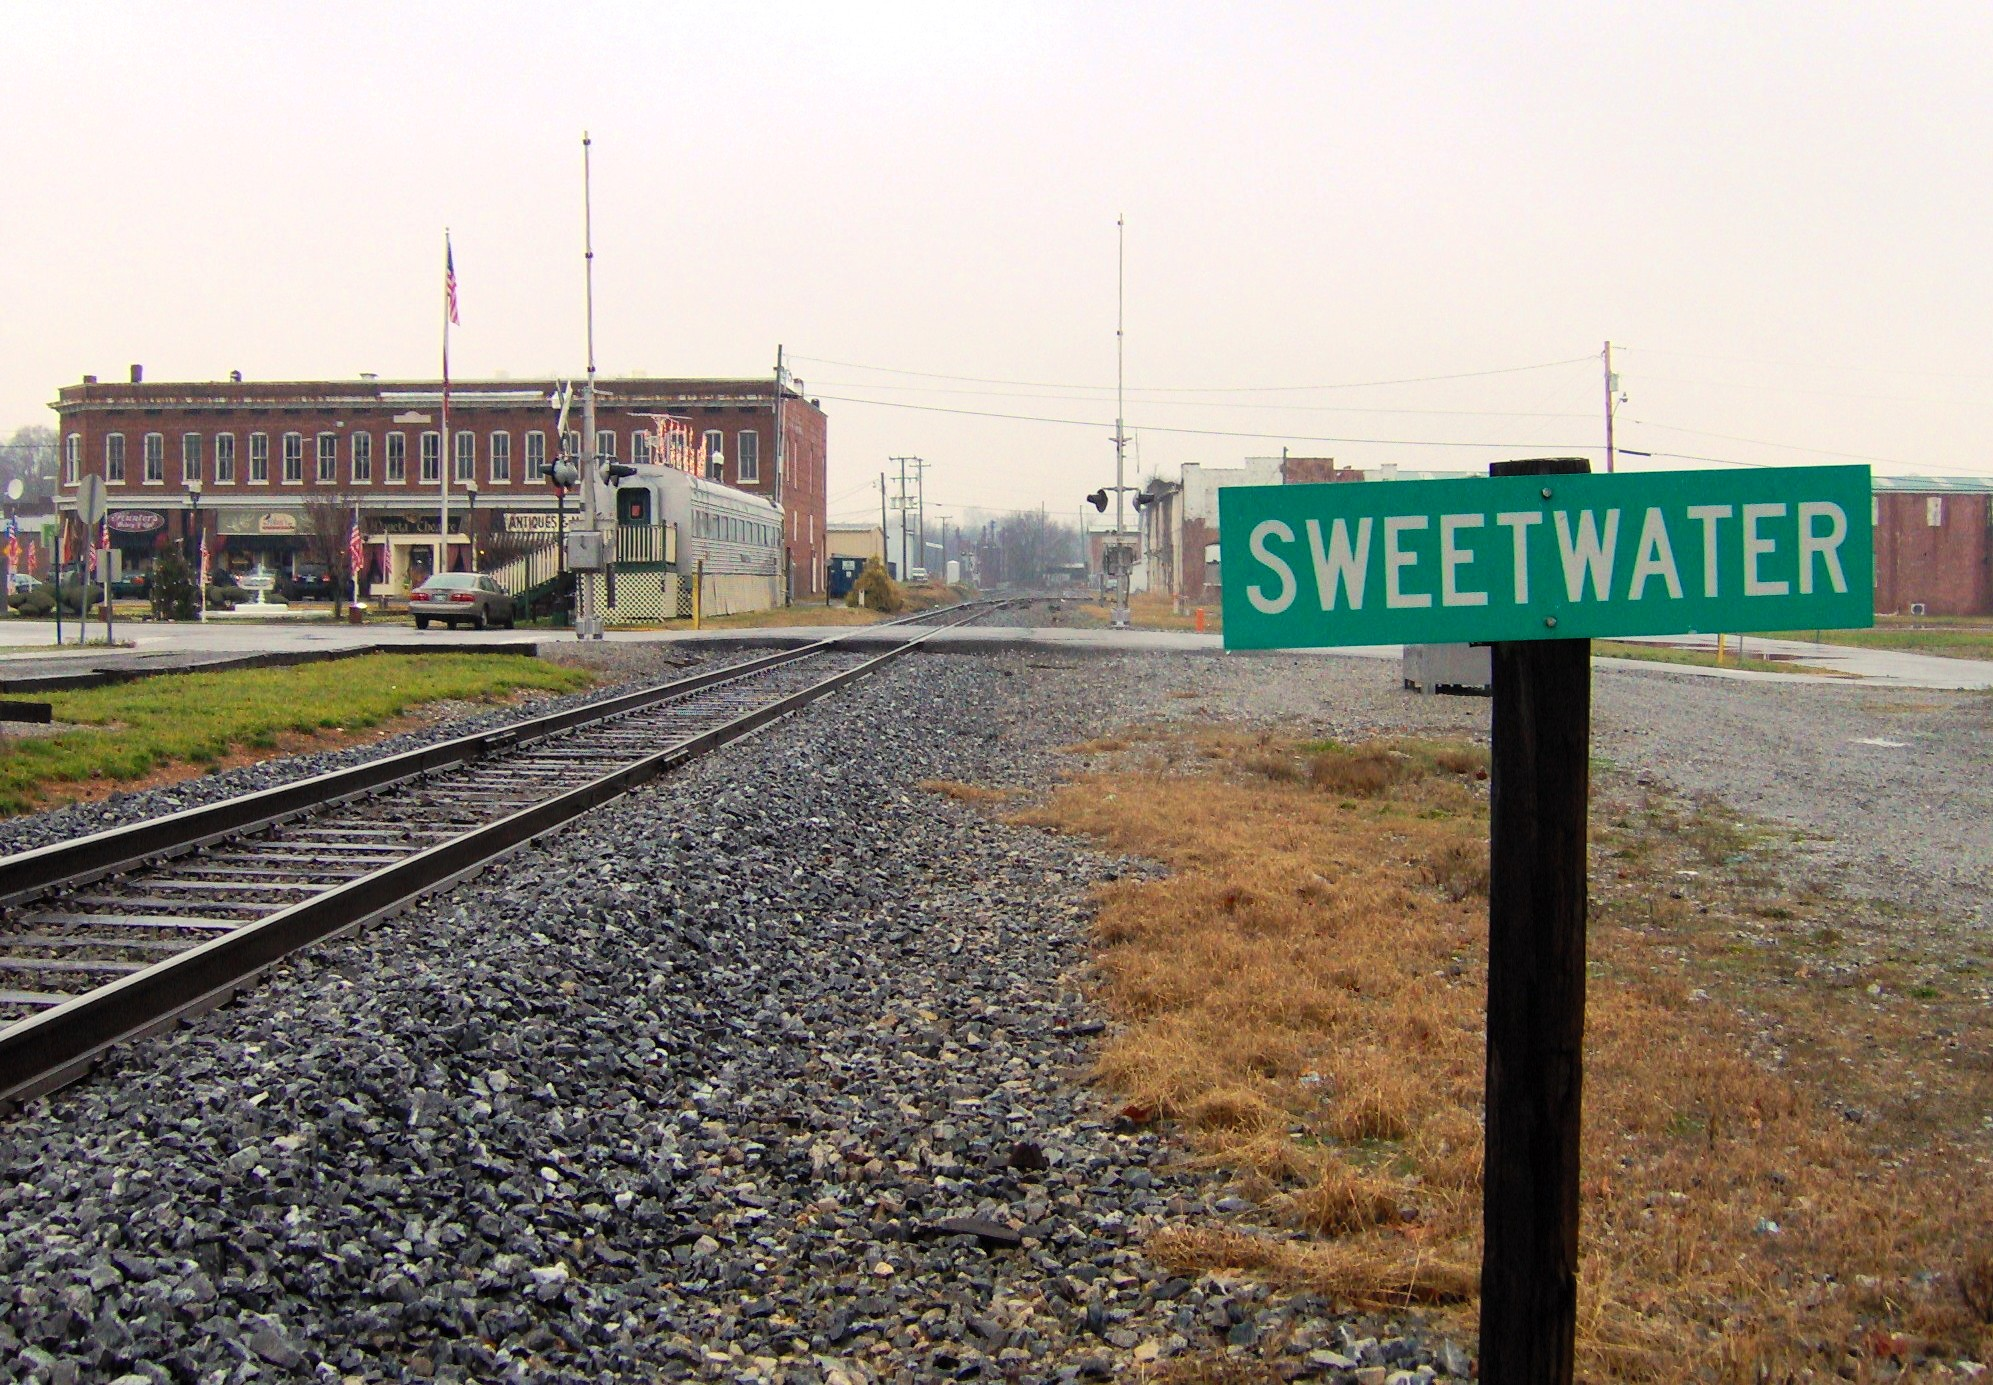 Sweetwater (Tennessee)